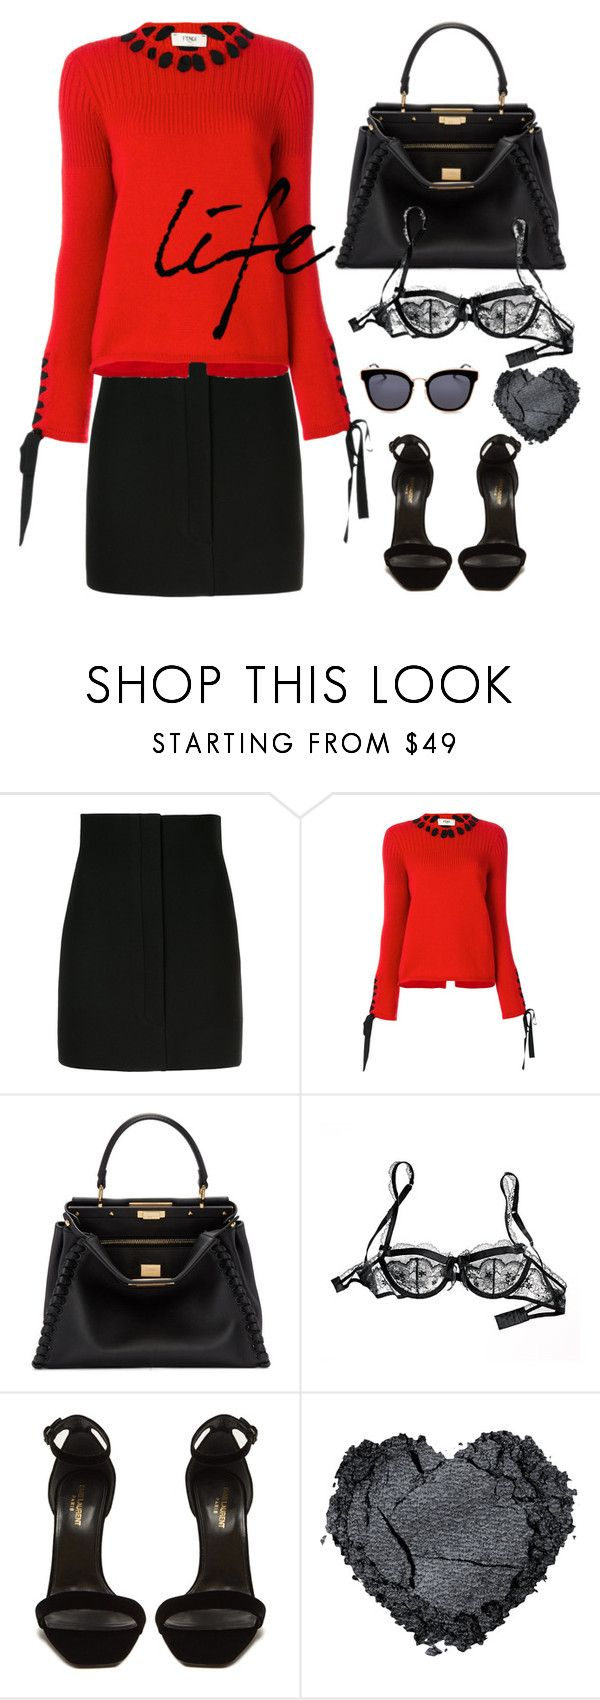 """""""Get Up And Do It Again, Keep Your Fingers Crossed"""" by jacque-reid ❤ liked on Polyvore featuring BEVZA, Fendi, Victoria's Secret, Yves Saint Laurent and Jimmy Choo"""